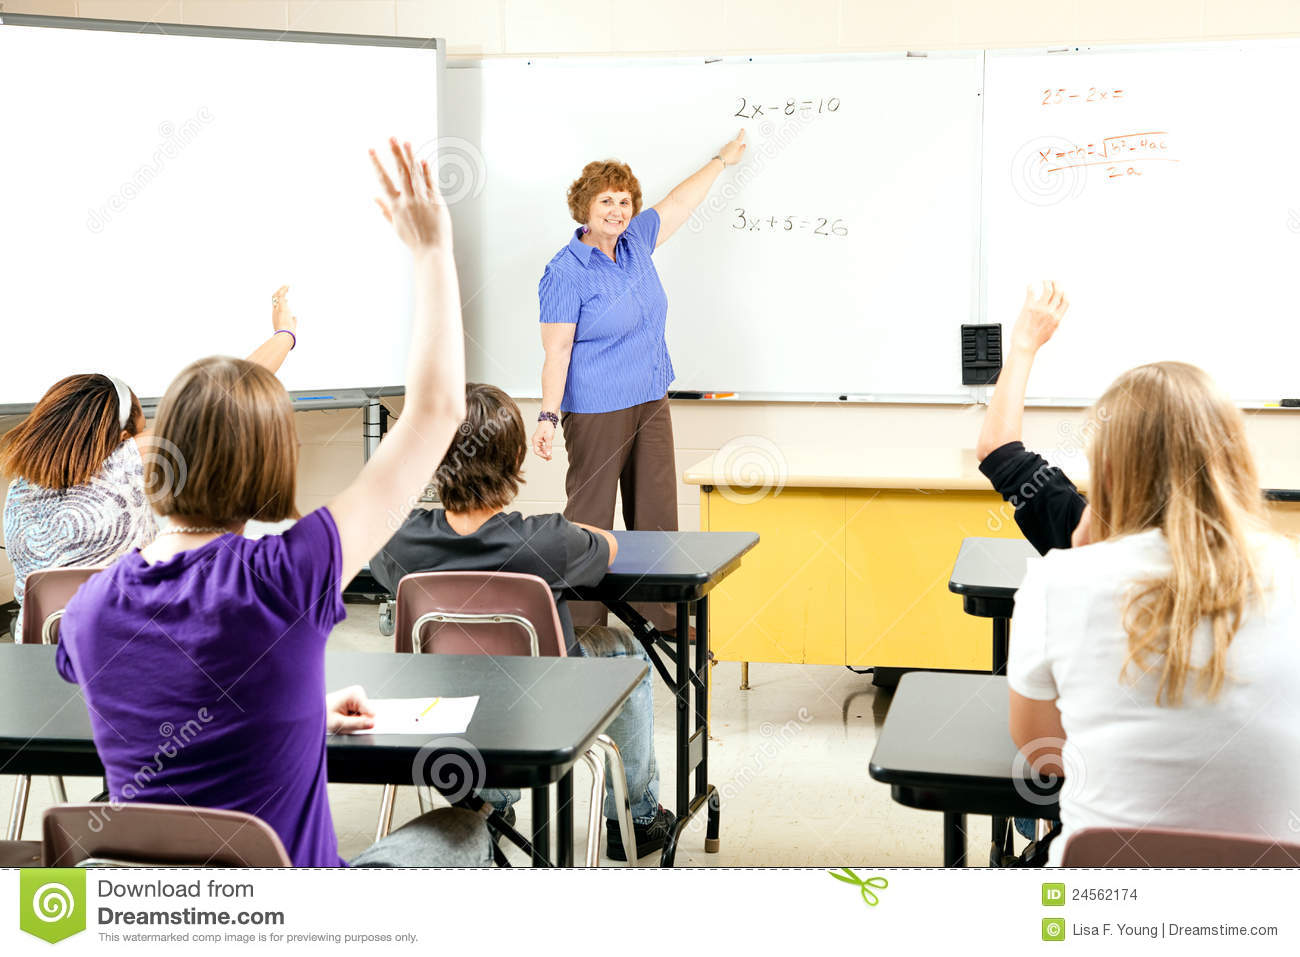 teacher table and chair chairs at marshalls home goods stock photo of teaching algebra class - image: 24562174